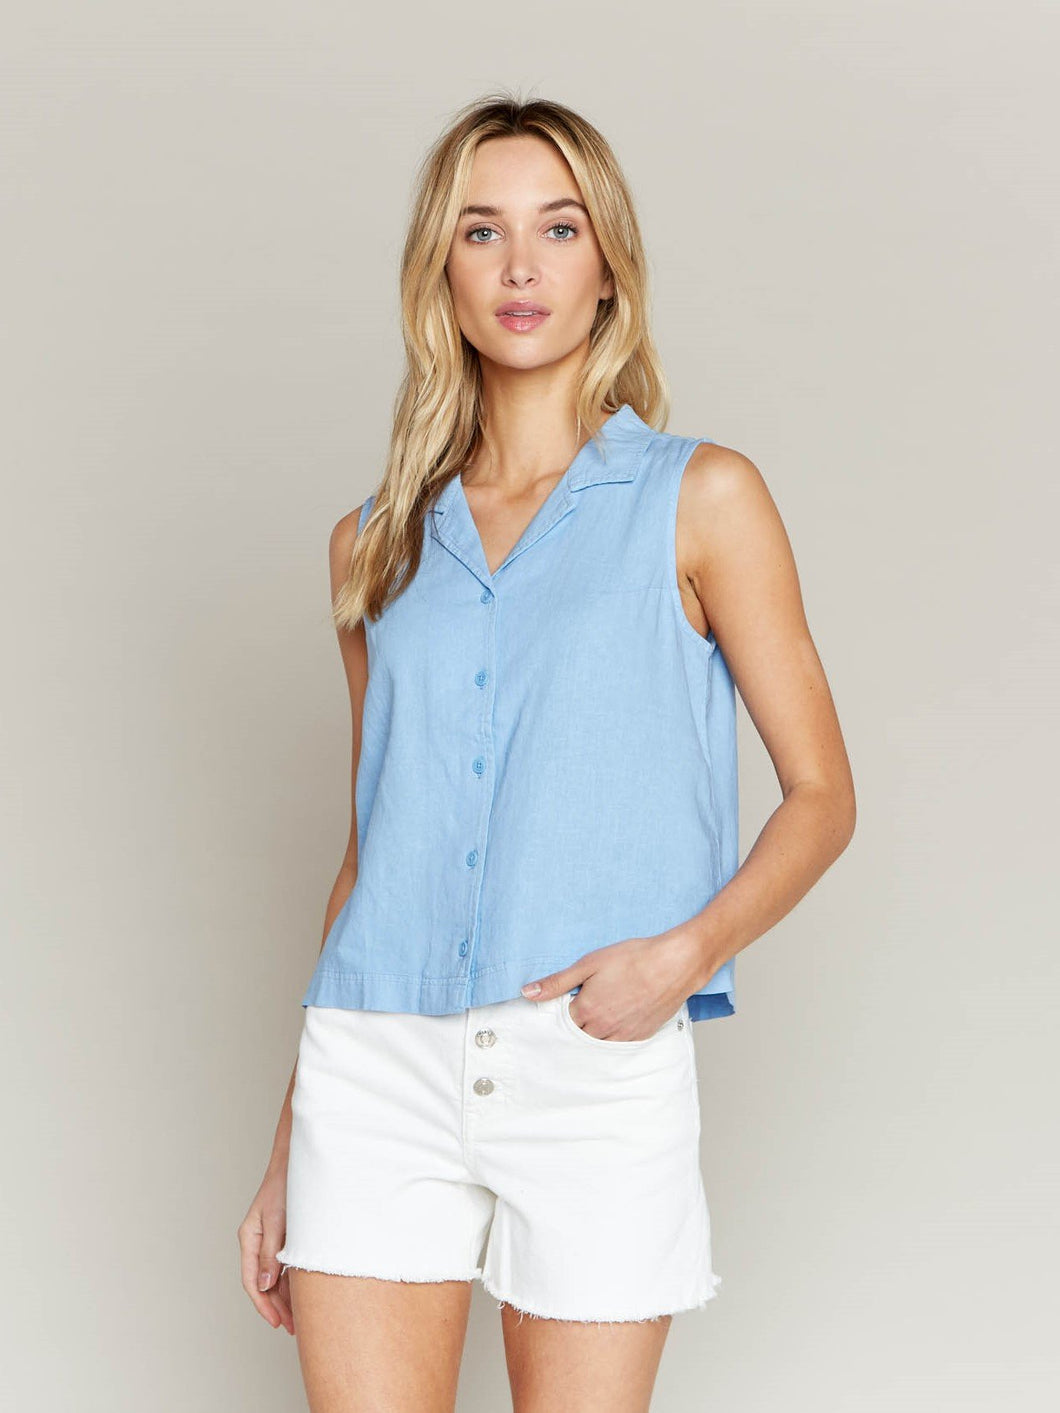 Mid Summer Dream Top